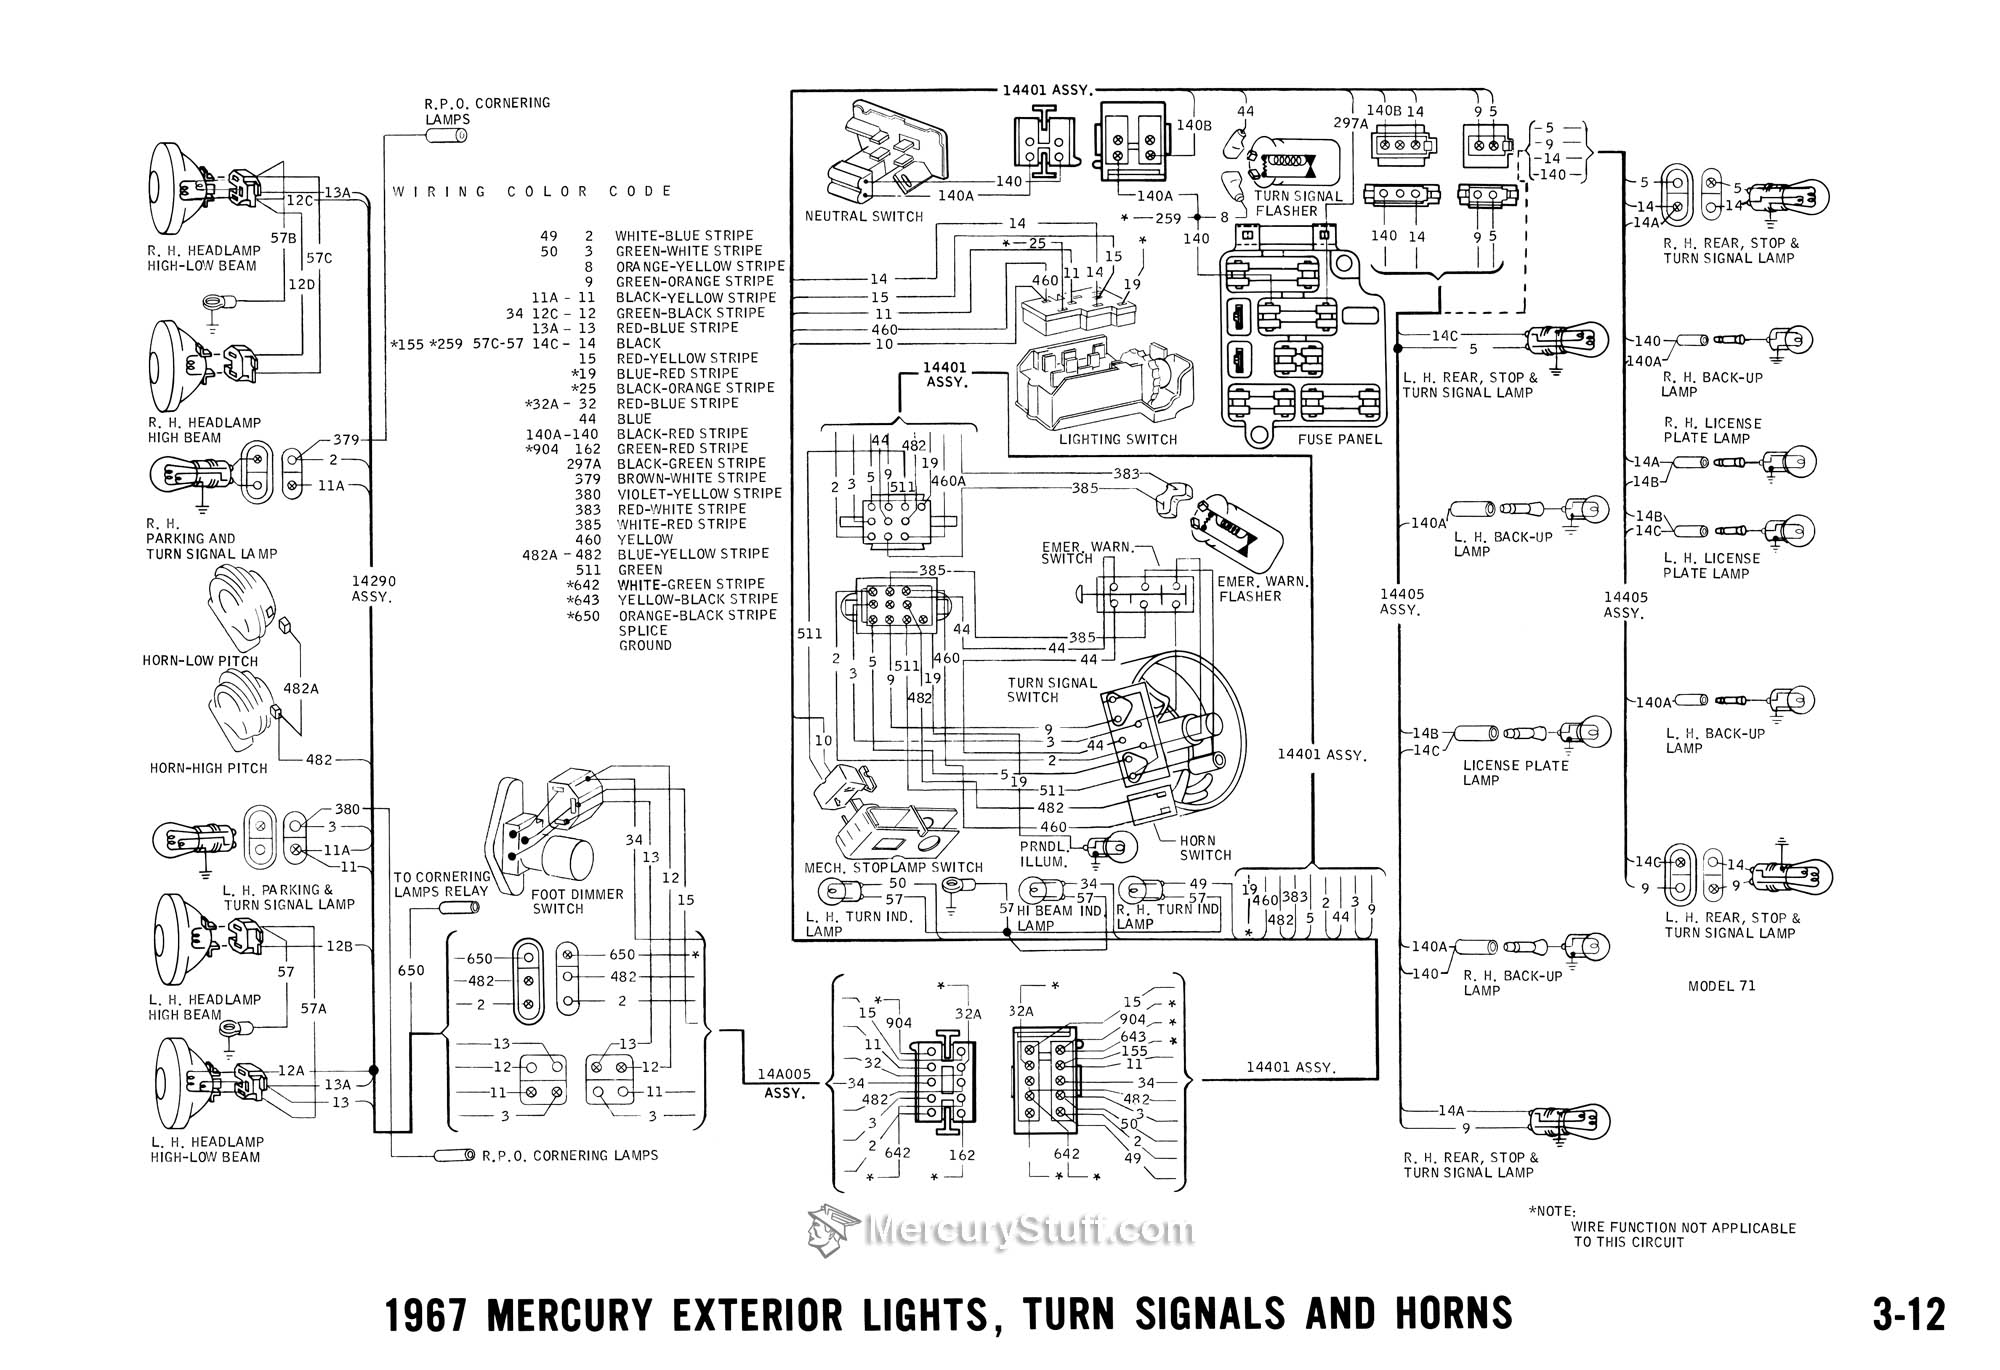 1967 mercury exterior lights turn signals horns wiring diagram 2006 mercury grand marquis the wiring diagram mercury 14 pin wiring harness diagram at alyssarenee.co